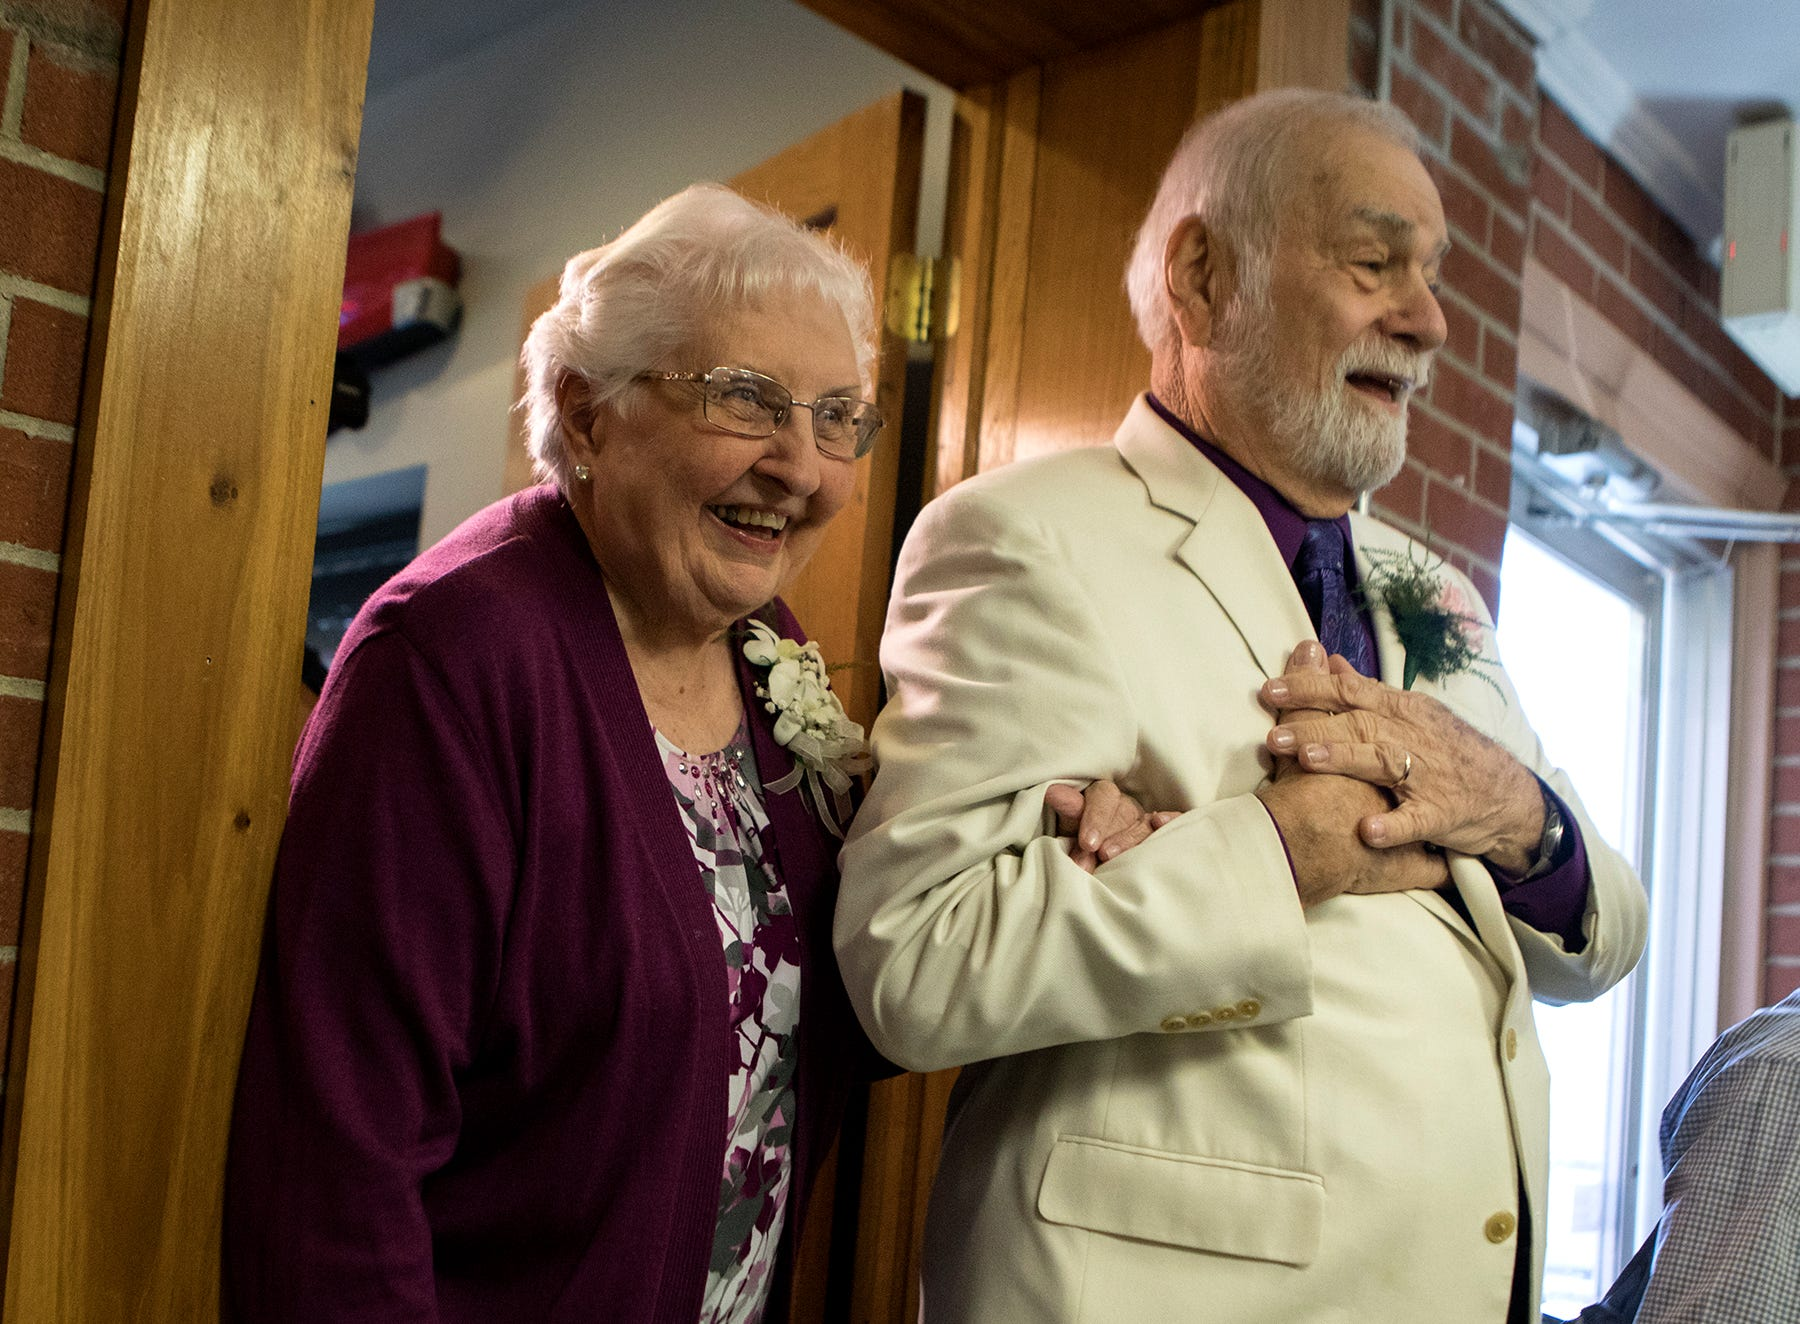 Reunited after decades apart, high school sweethearts wed at 80